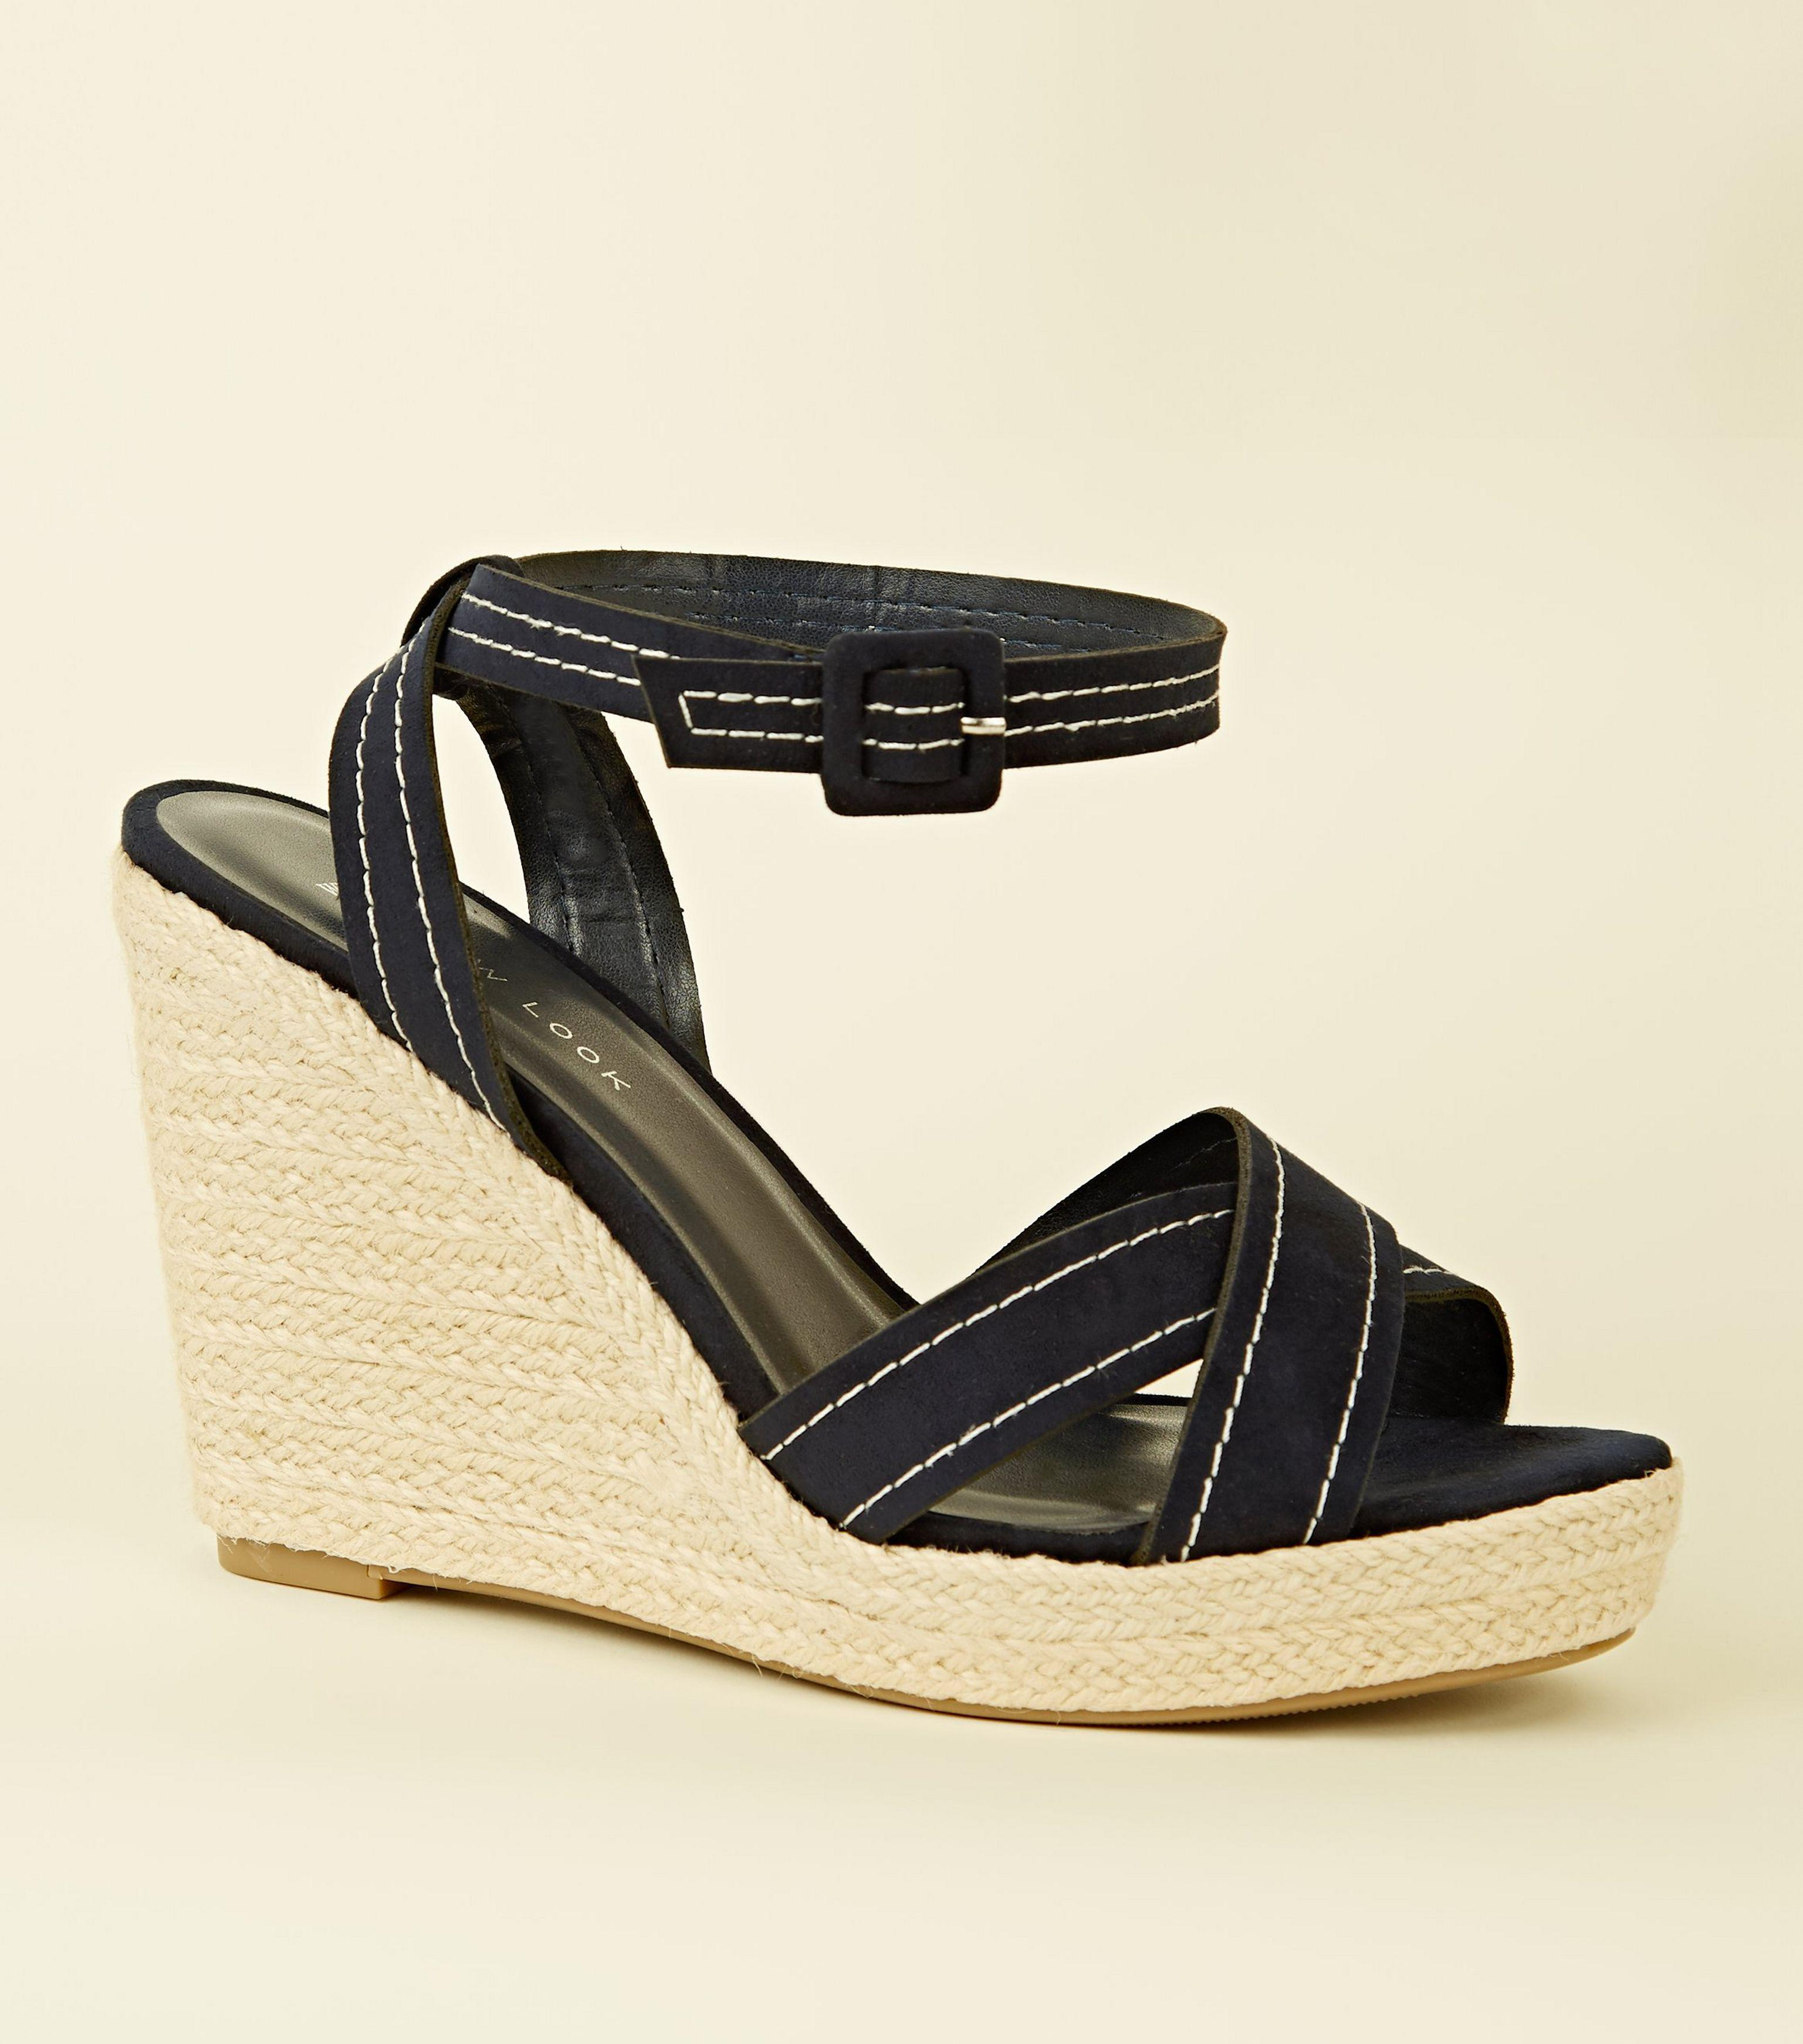 d6e4c12f4cb New Look Wide Fit Navy Suedette Contrast Stitch Wedges in Blue - Lyst